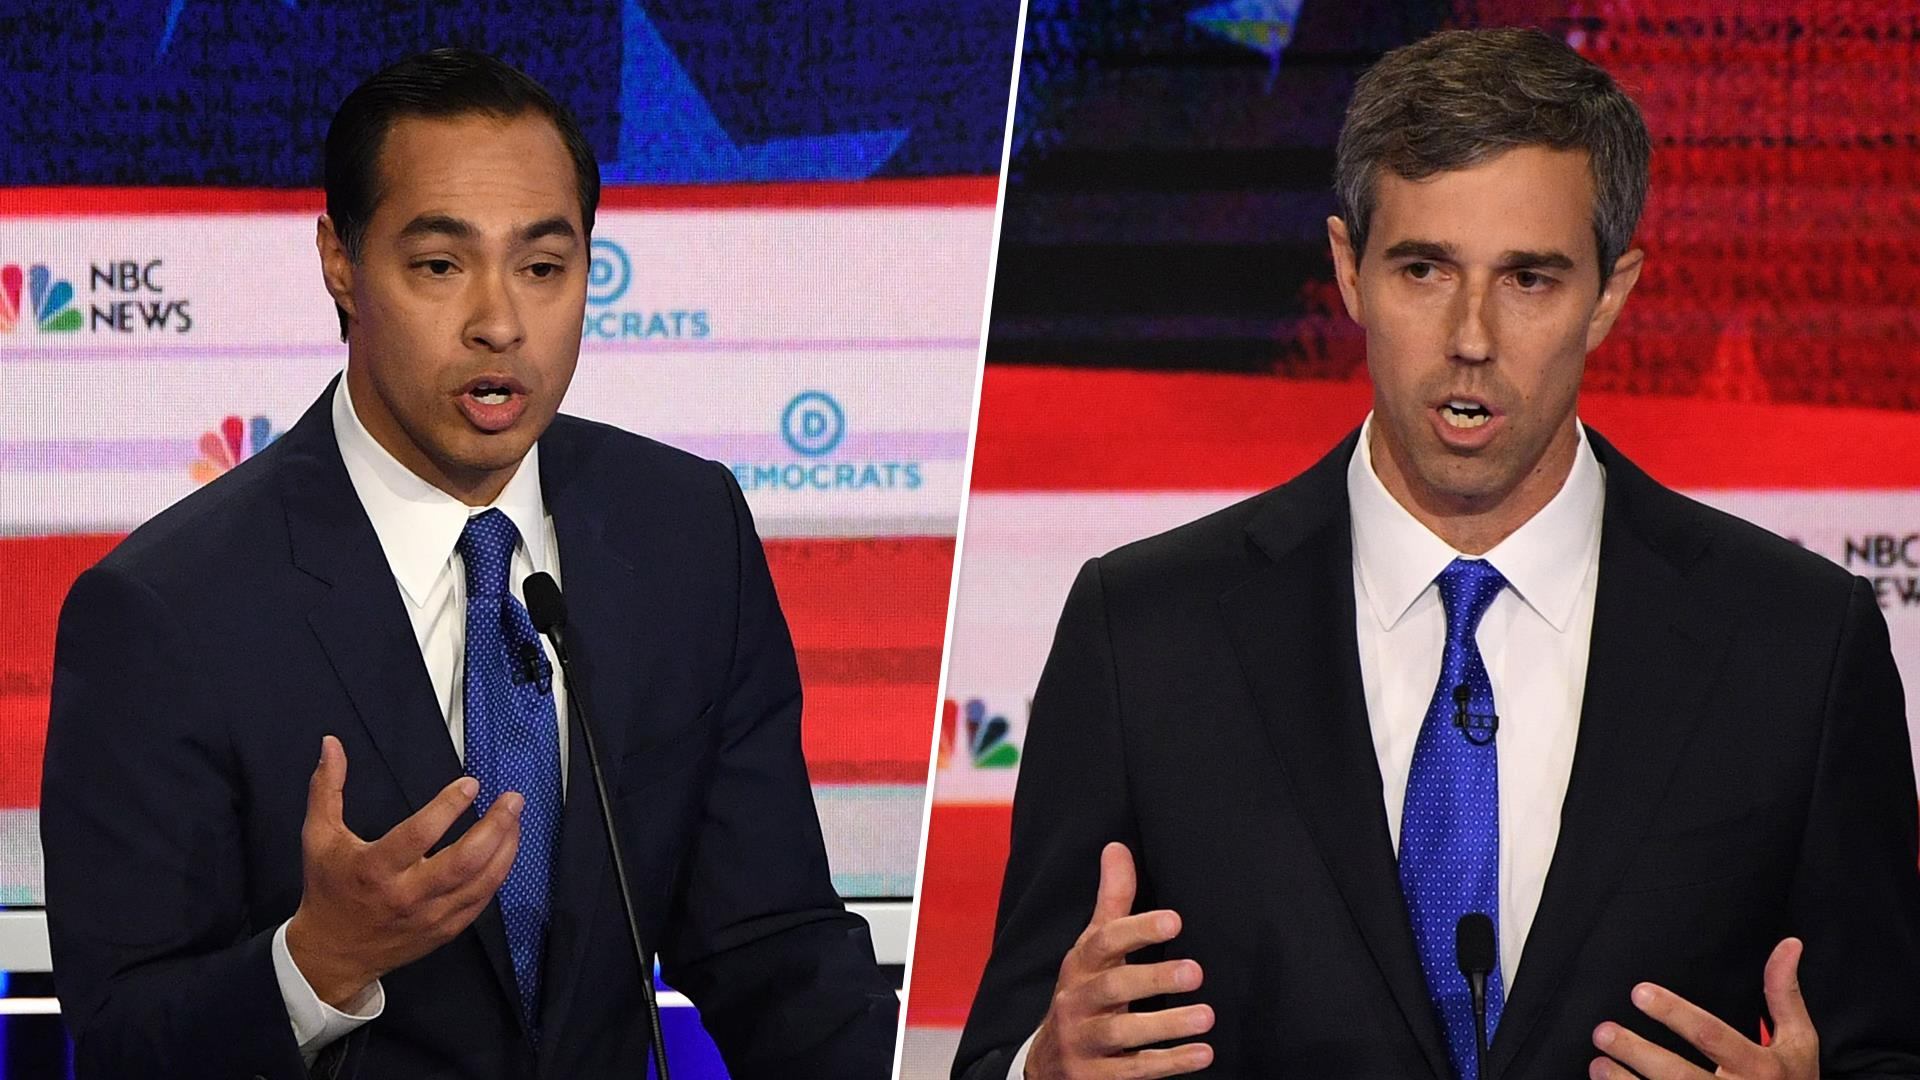 Castro to Beto O'Rourke: 'I think you should do your homework' on immigration laws